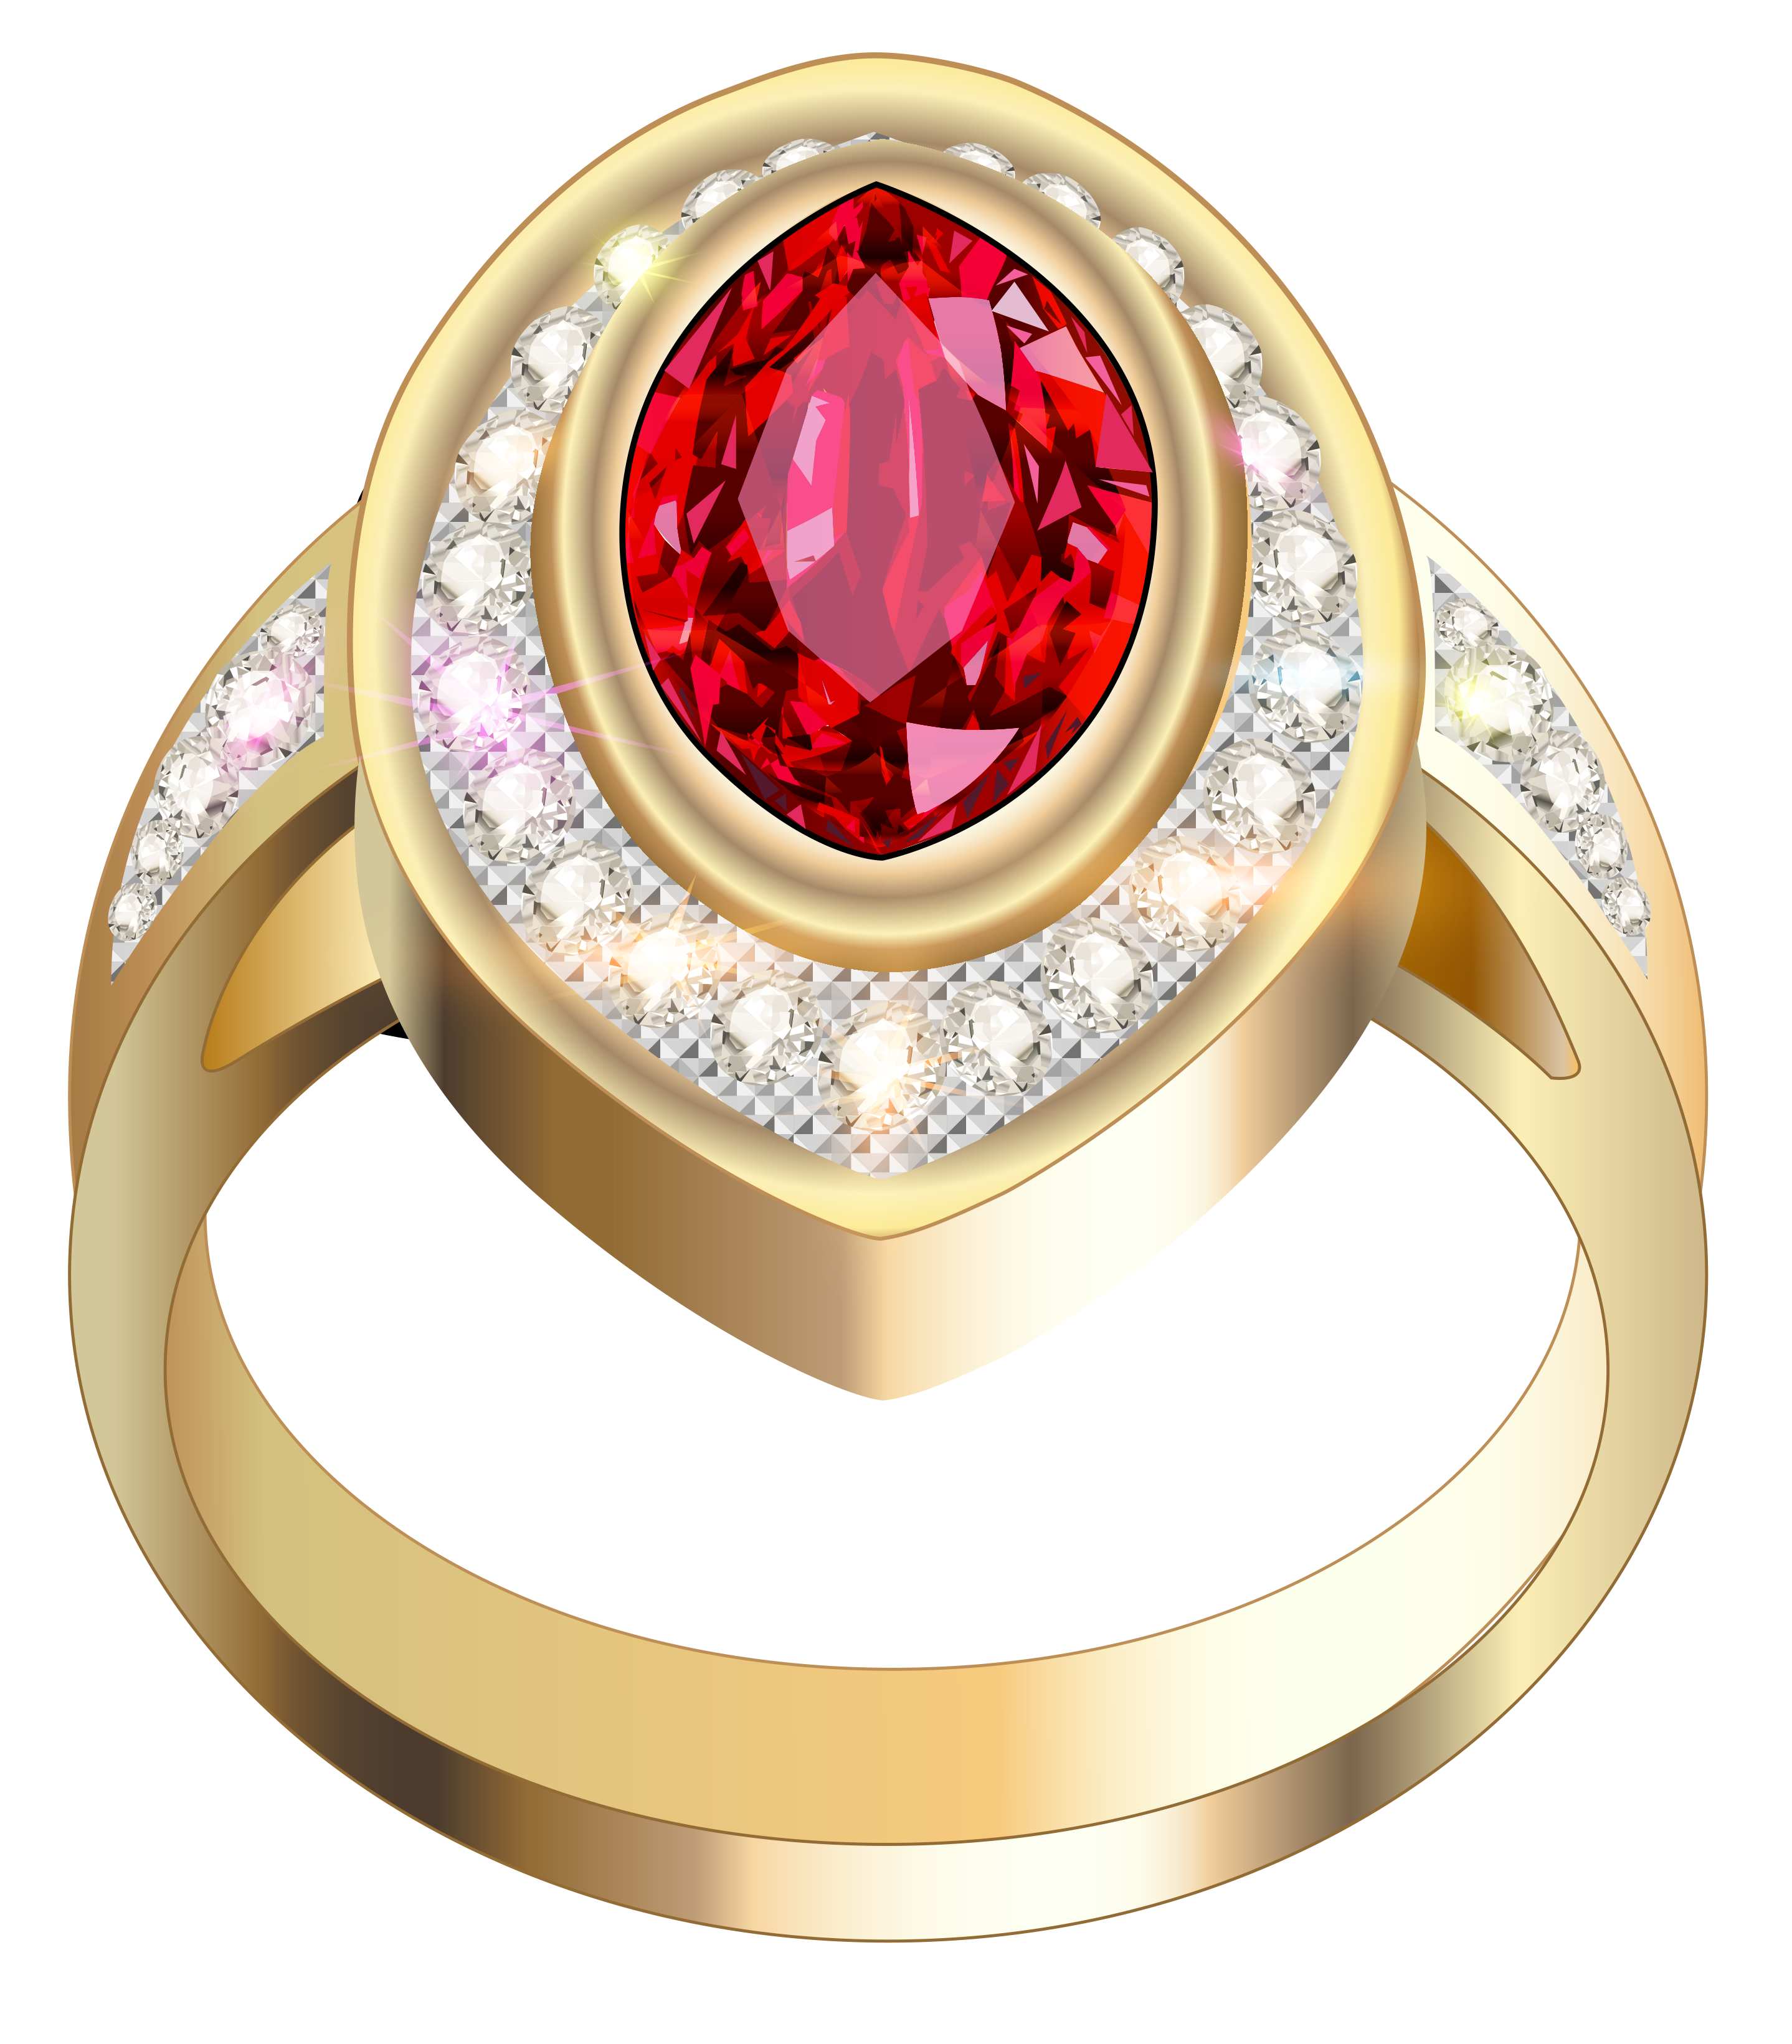 Jewelry PNG images free download, ring PNG, earnings PNG ...